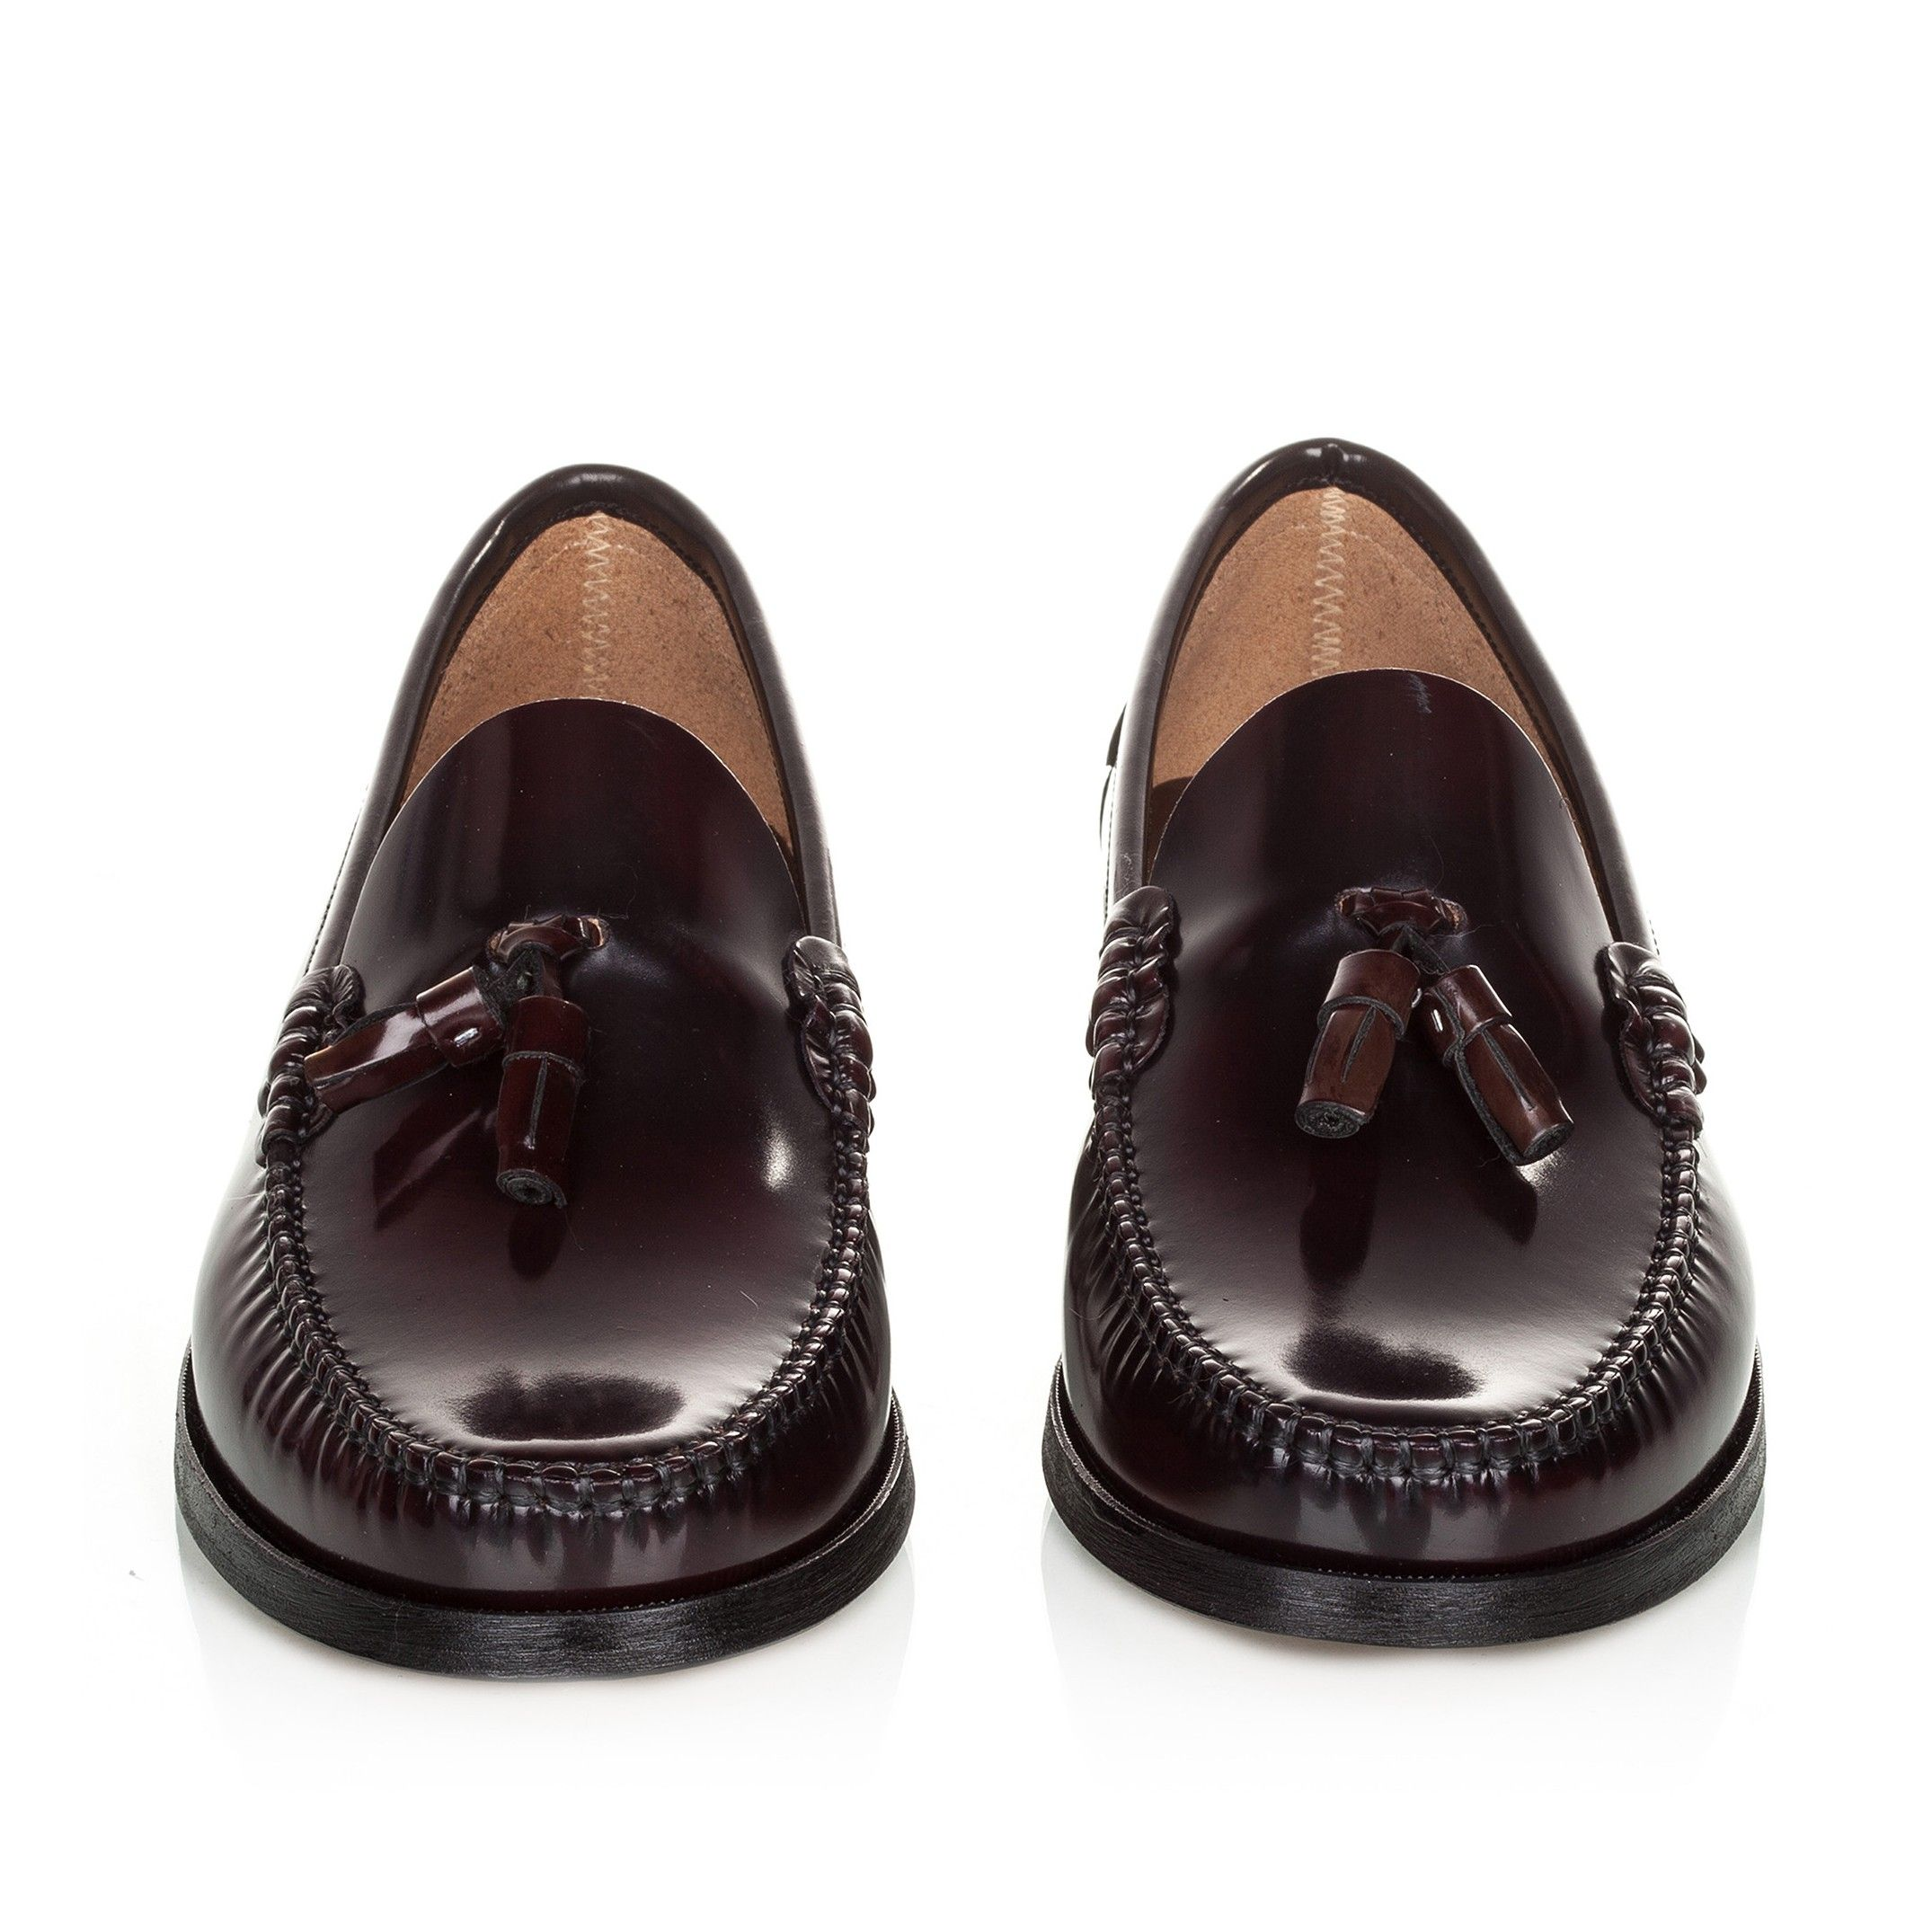 Castellanisimos Leather Moccasins with Tassels Elegant and Comfortable Classic Shoes